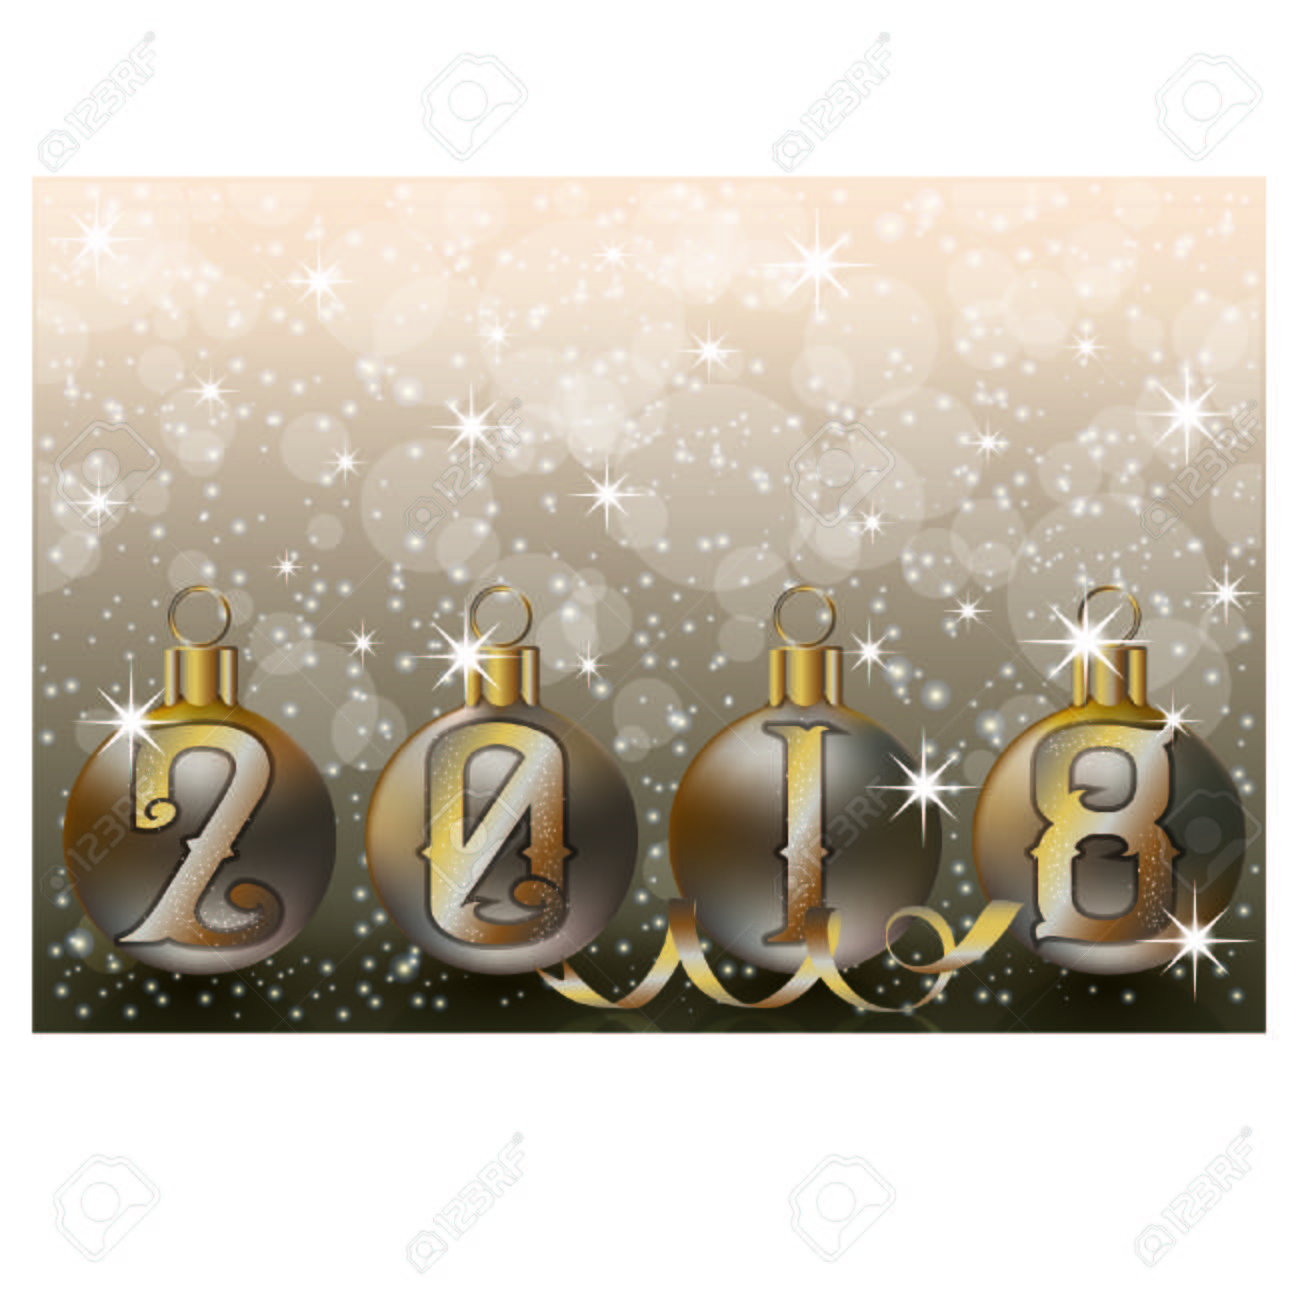 merry christmas and happy 2018 new year wallpaper vector illustration stock vector 89018746